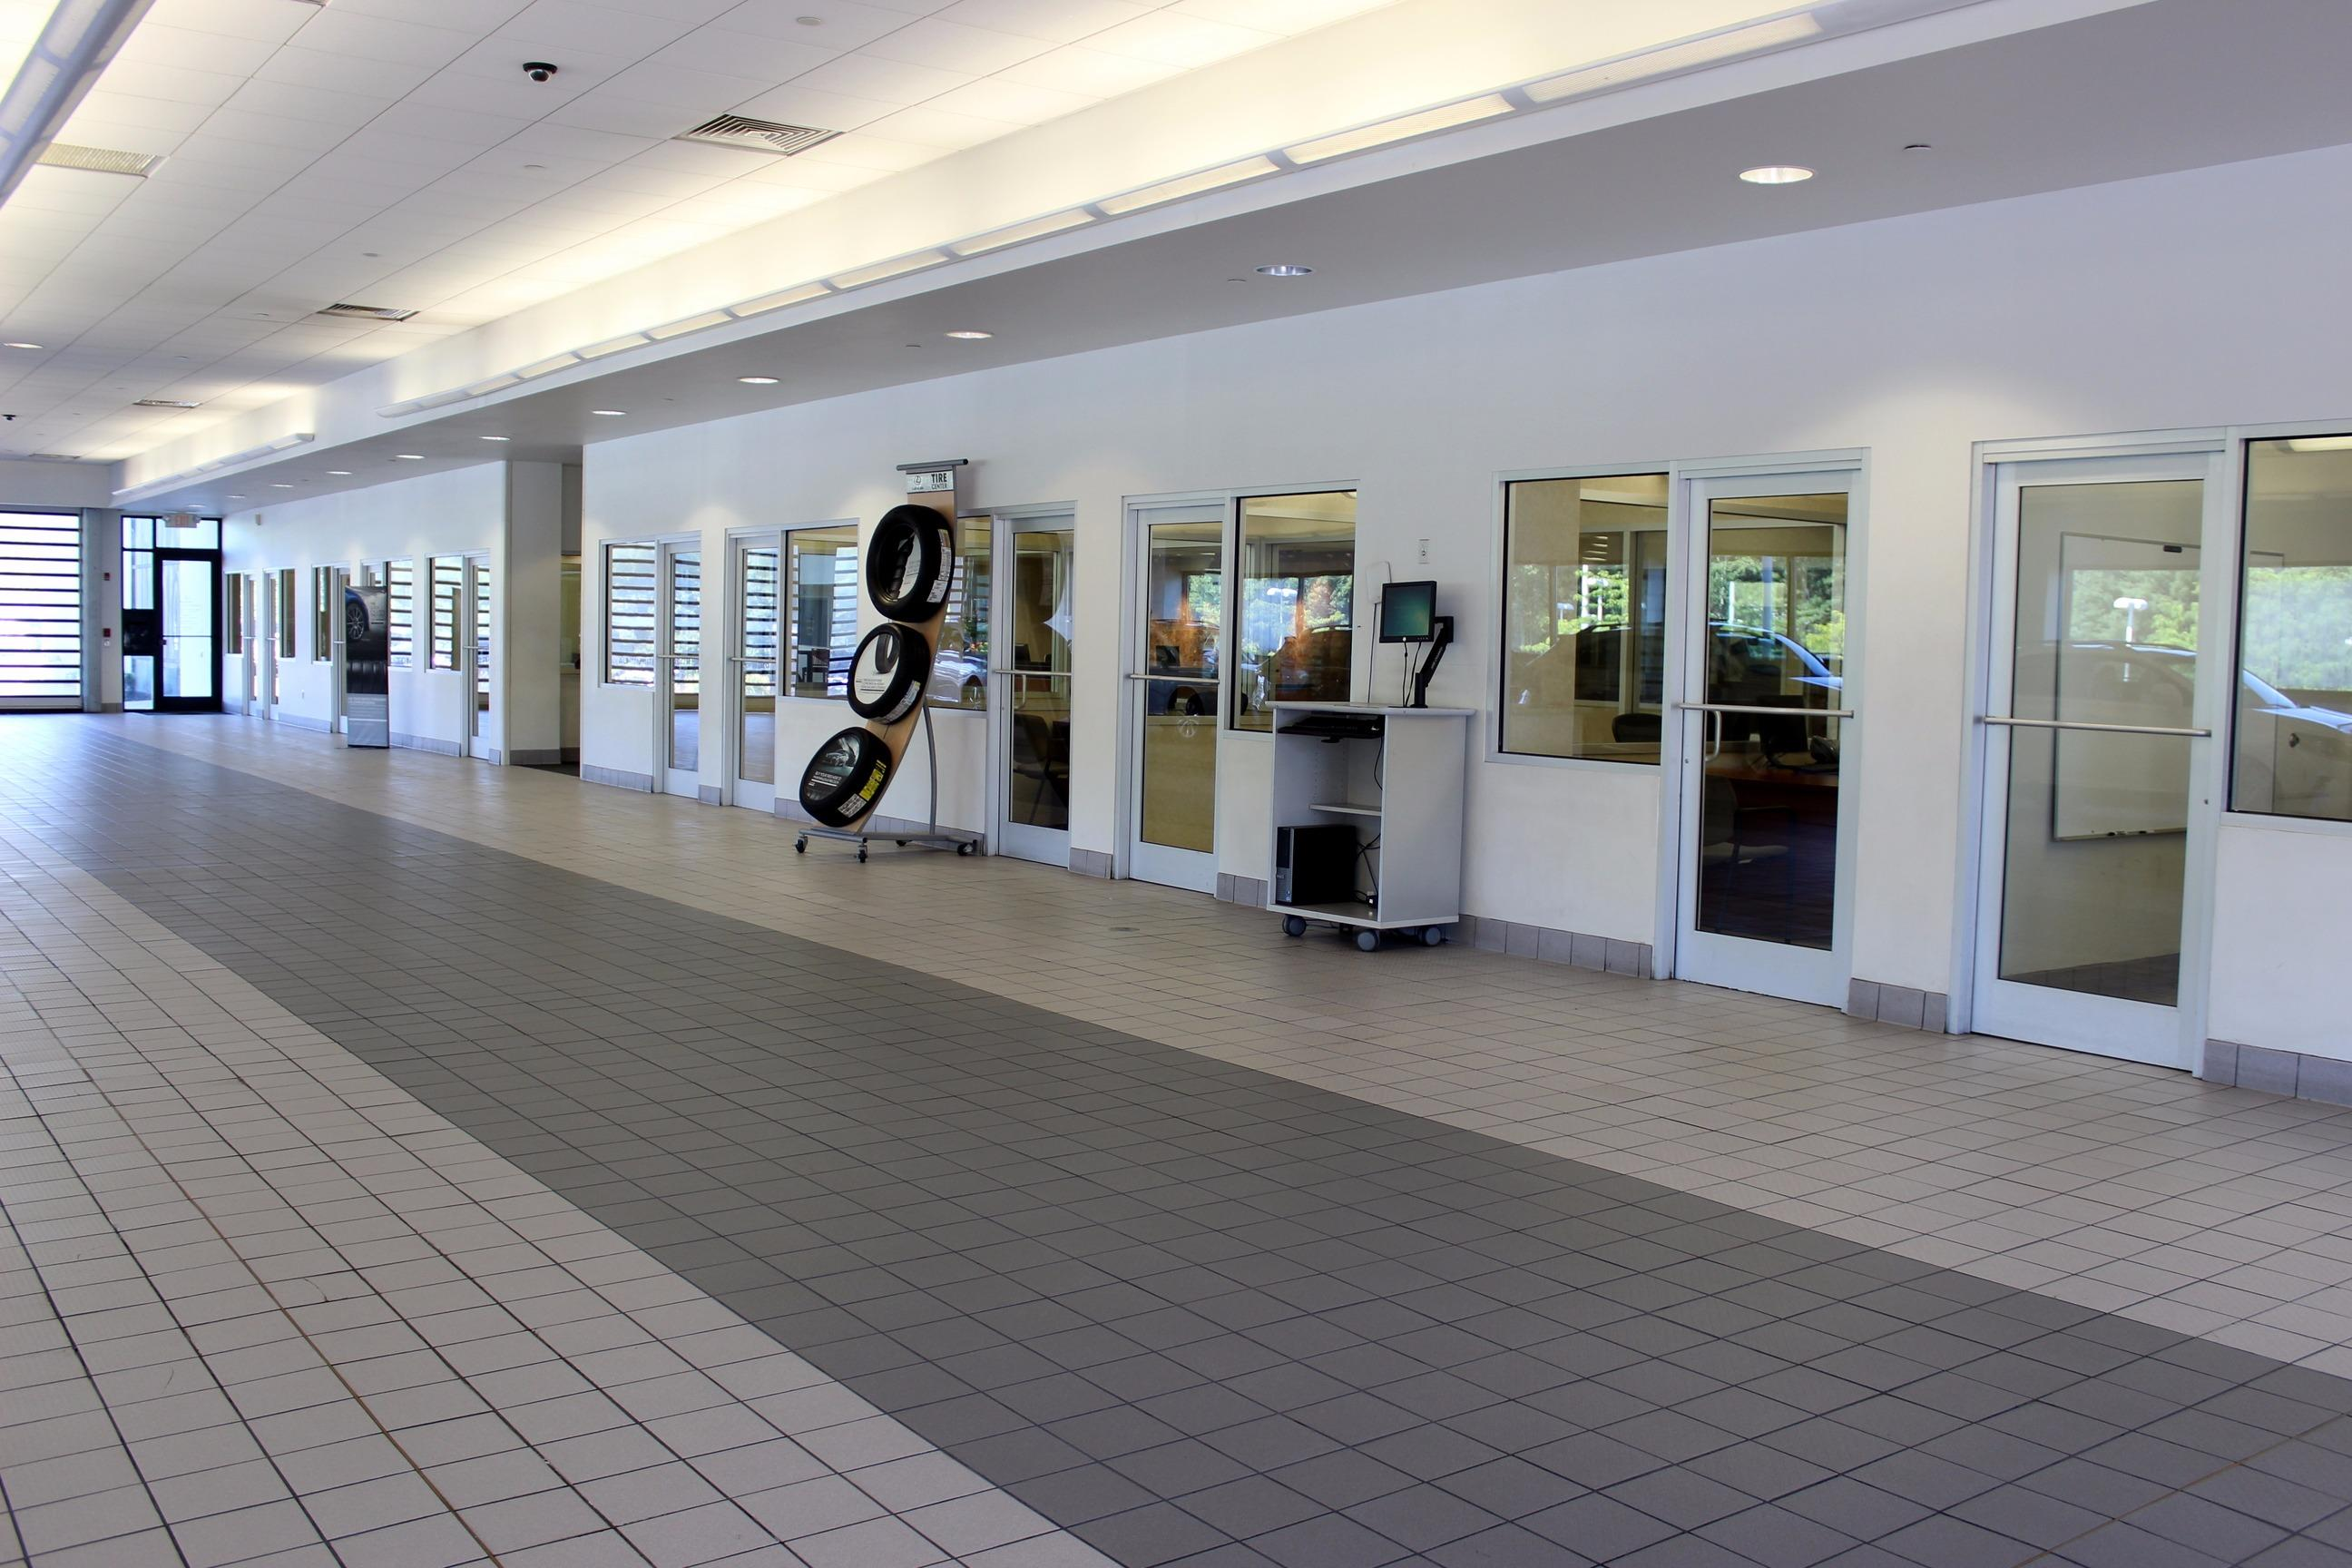 Herb chambers lexus in sharon ma lexus sales service for Flagship motors lynnfield mass